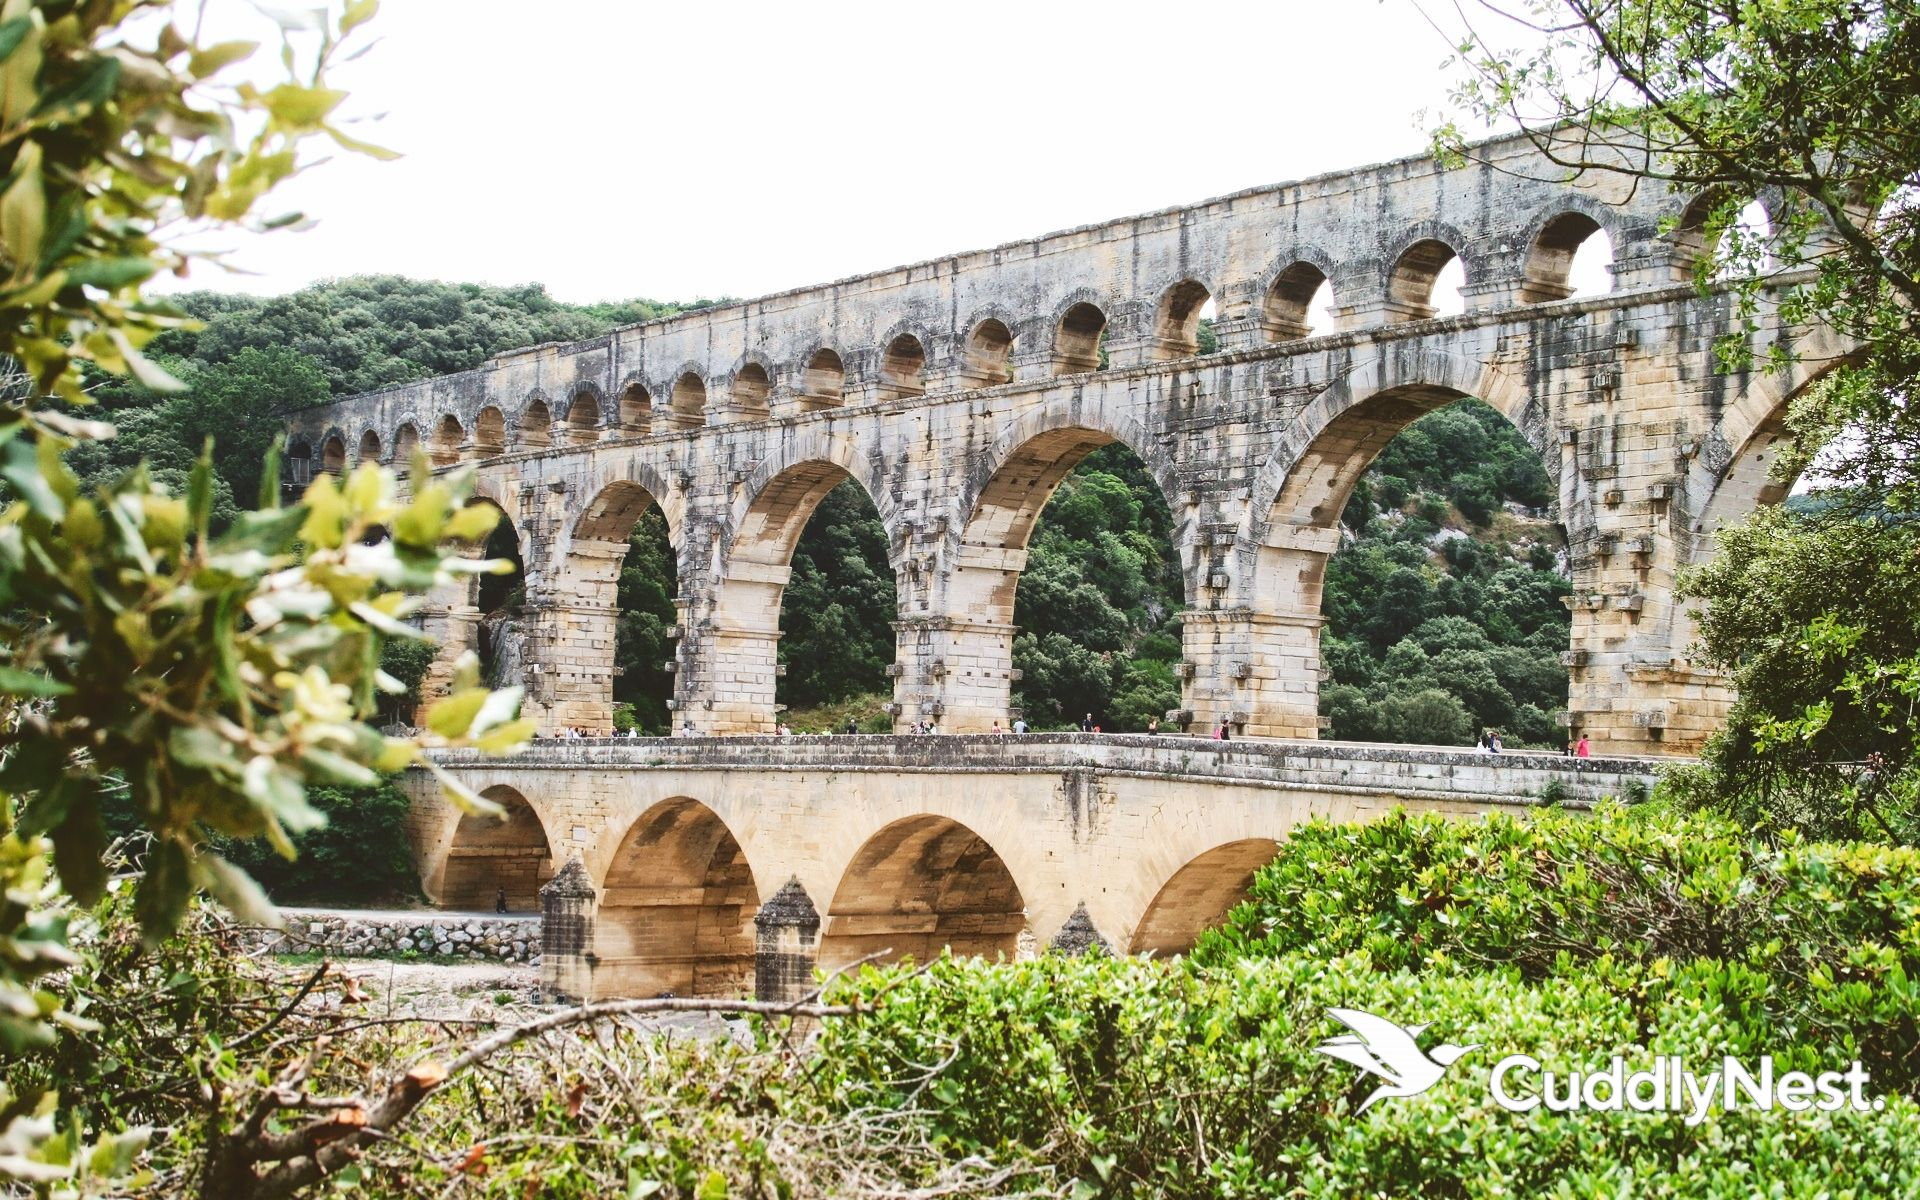 Pont du Gard France Travel Guide What to See TTour de France Cuddlynest Travel Tips Guides French Alps July 2019